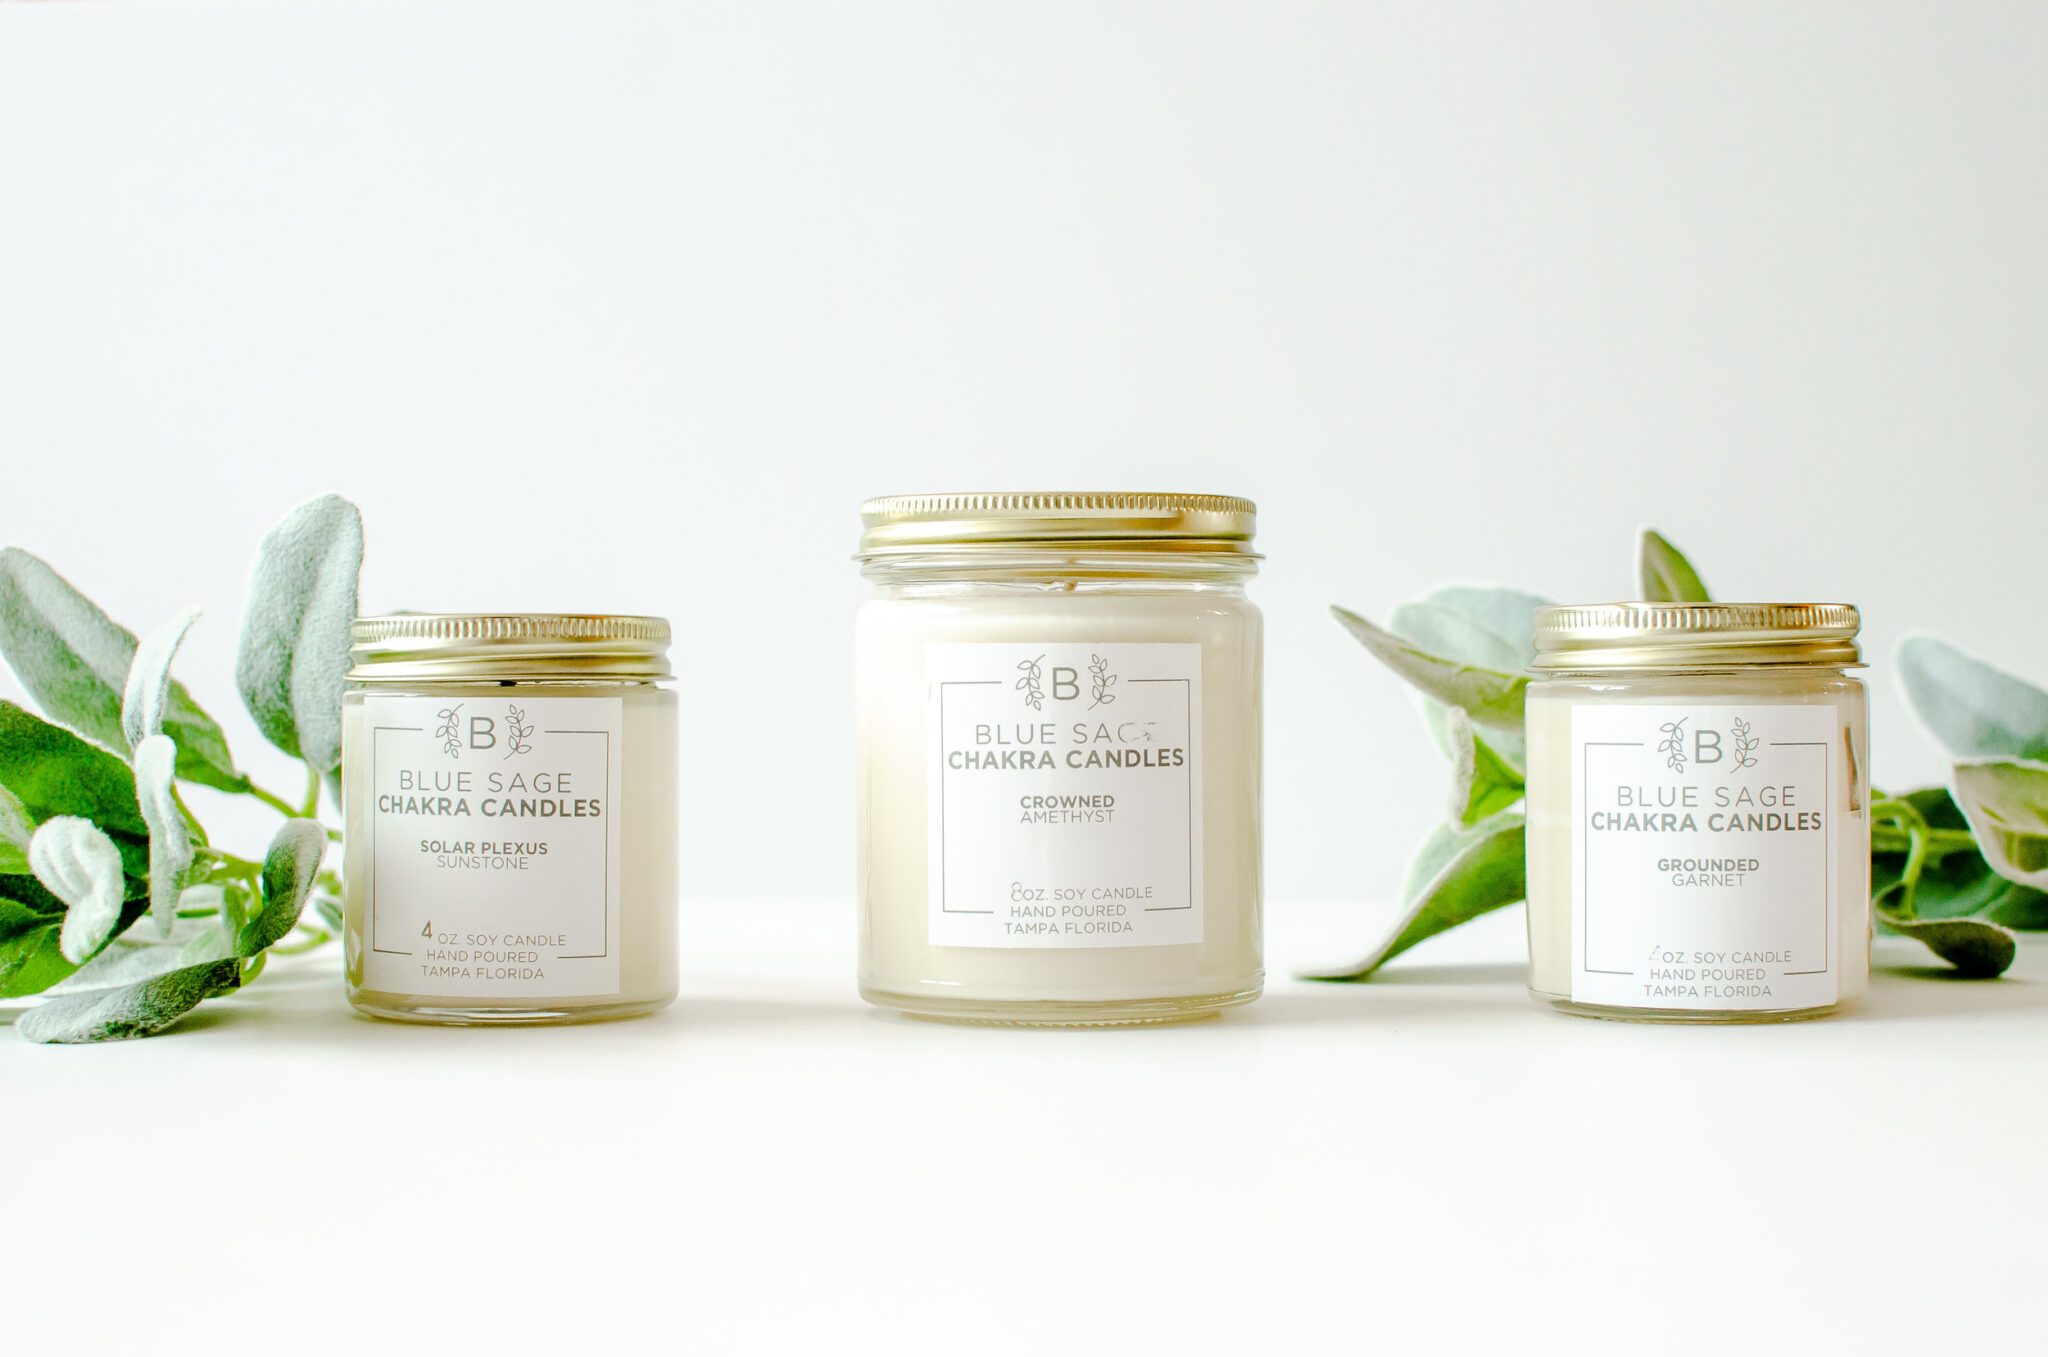 Crowned - 7th Chakra Soy Candle